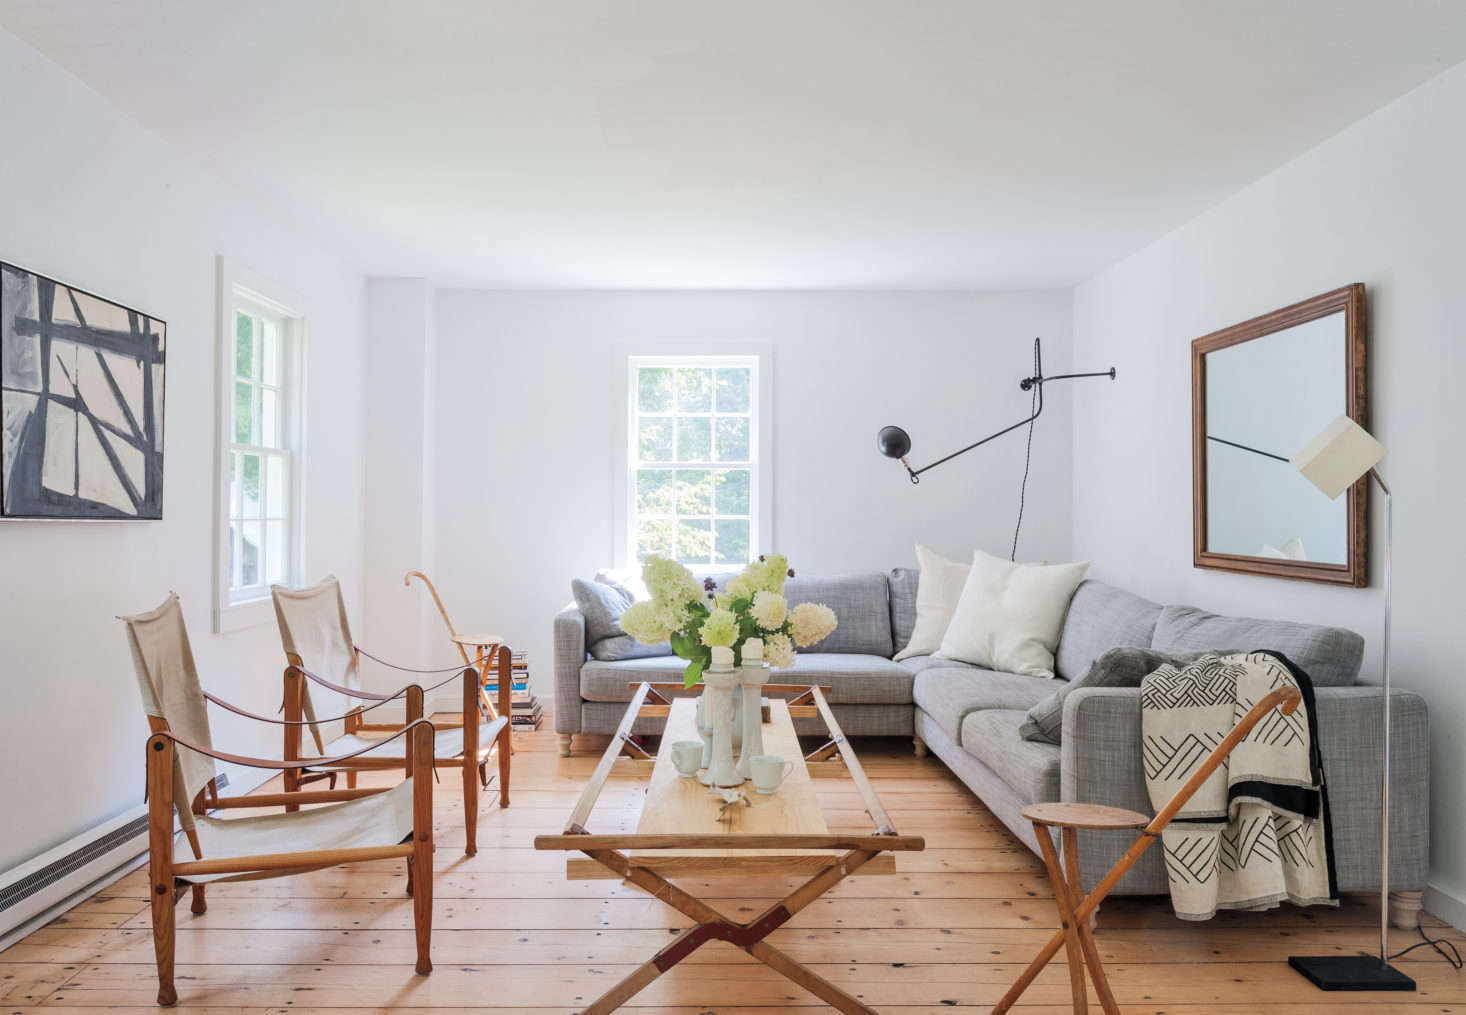 In their Hudson Valley living room, Robert Highsmith and Stefanie Brechbuehler of Workstead maximize a sense of space by using leggy, low-profile furniture and fixtures as well as a mirror over the couch. They also keep the space looking uncluttered by ditching the drapes and the rug. Photograph by Matthew Williams from Remodelista: A Manual for the Considered Home.